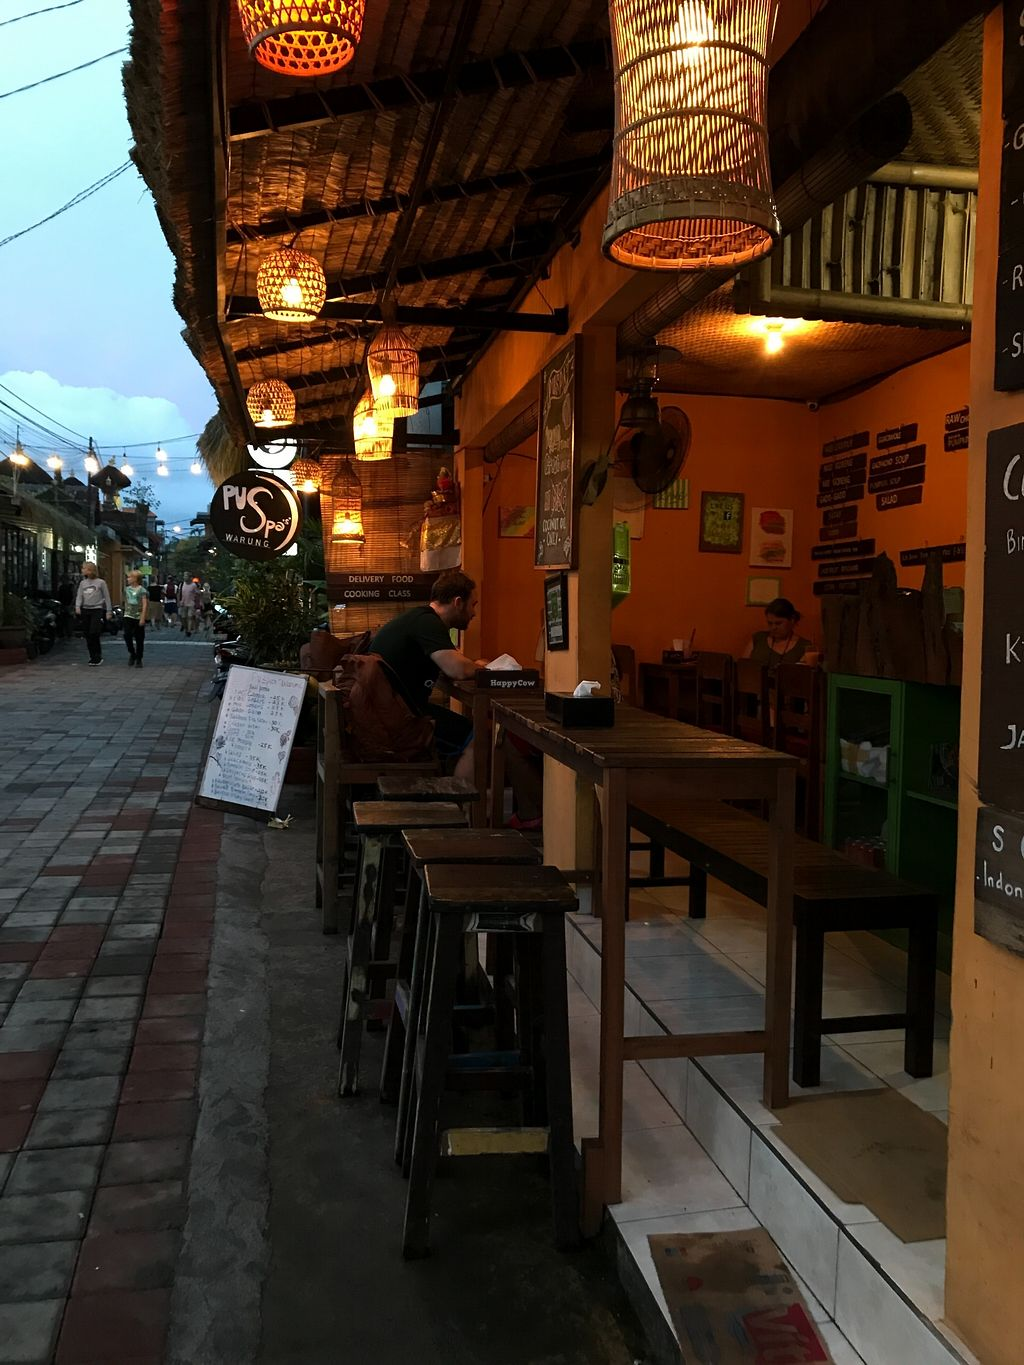 """Photo of Puspa's Warung  by <a href=""""/members/profile/marosi.laszlo"""">marosi.laszlo</a> <br/>Puspa's warung from the outside <br/> March 15, 2018  - <a href='/contact/abuse/image/100029/370994'>Report</a>"""